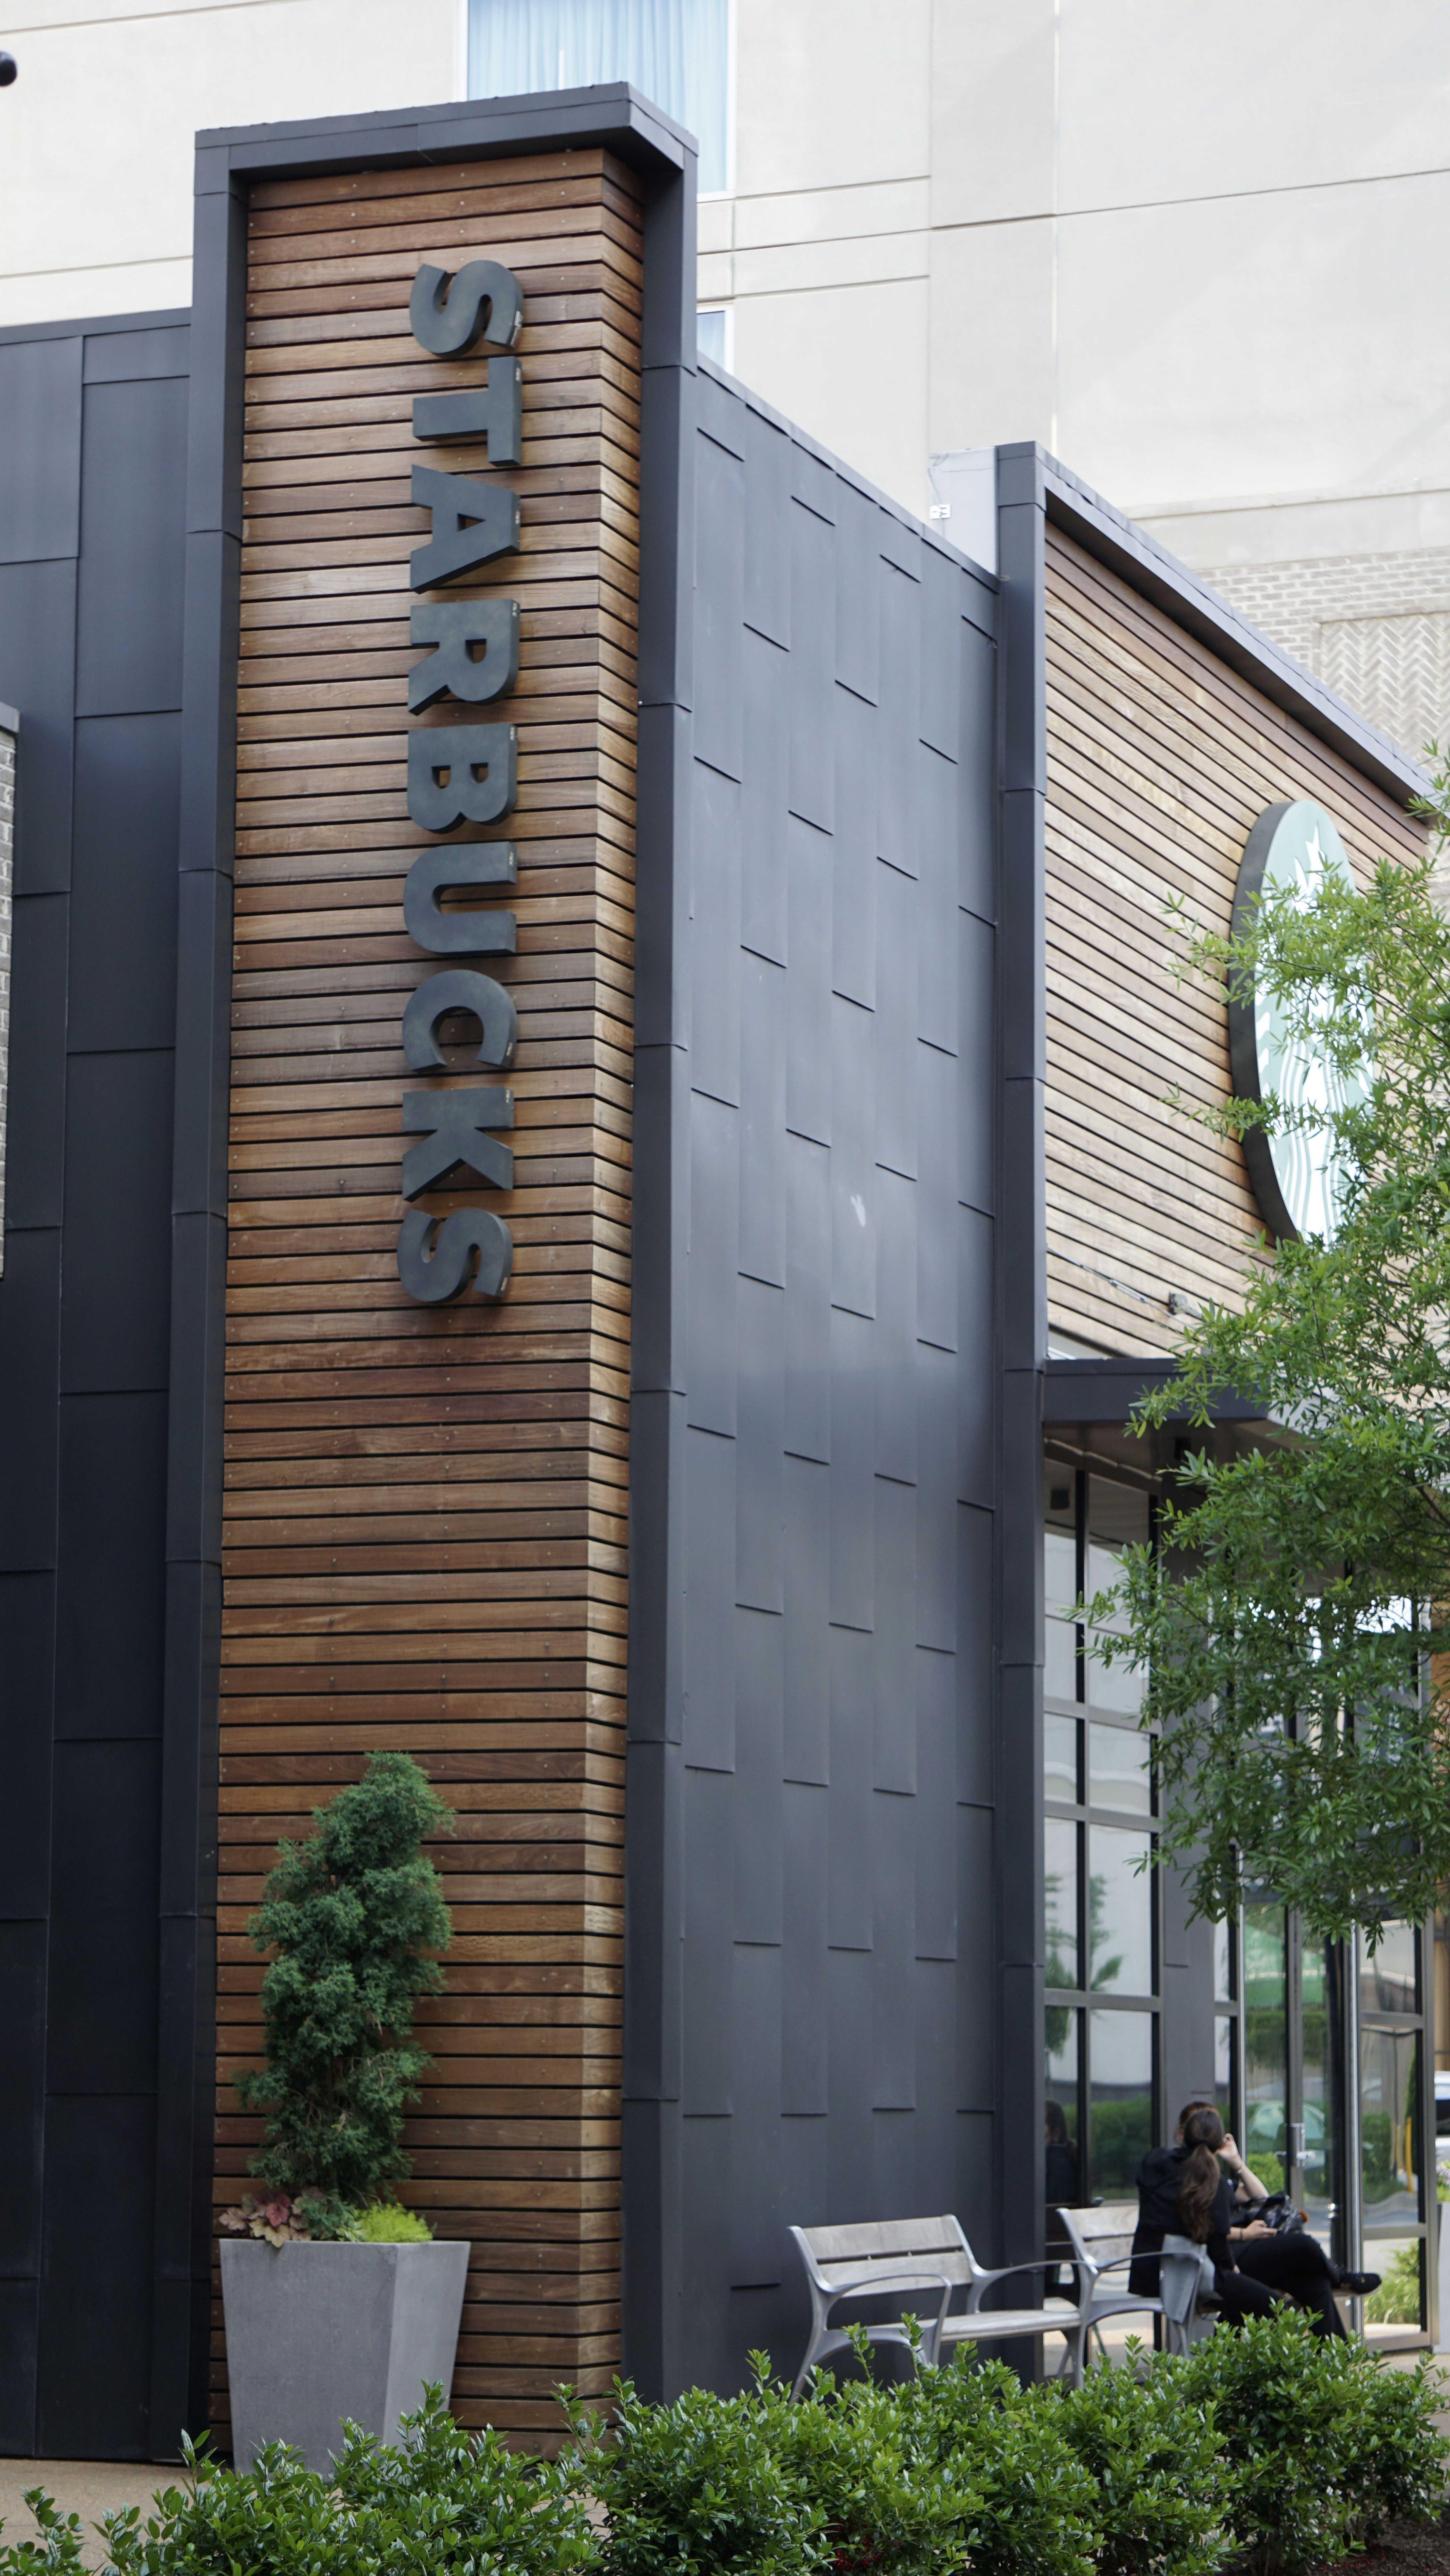 elZinc Graphite: Hotel Avalon Starbucks - MetalTech-USA